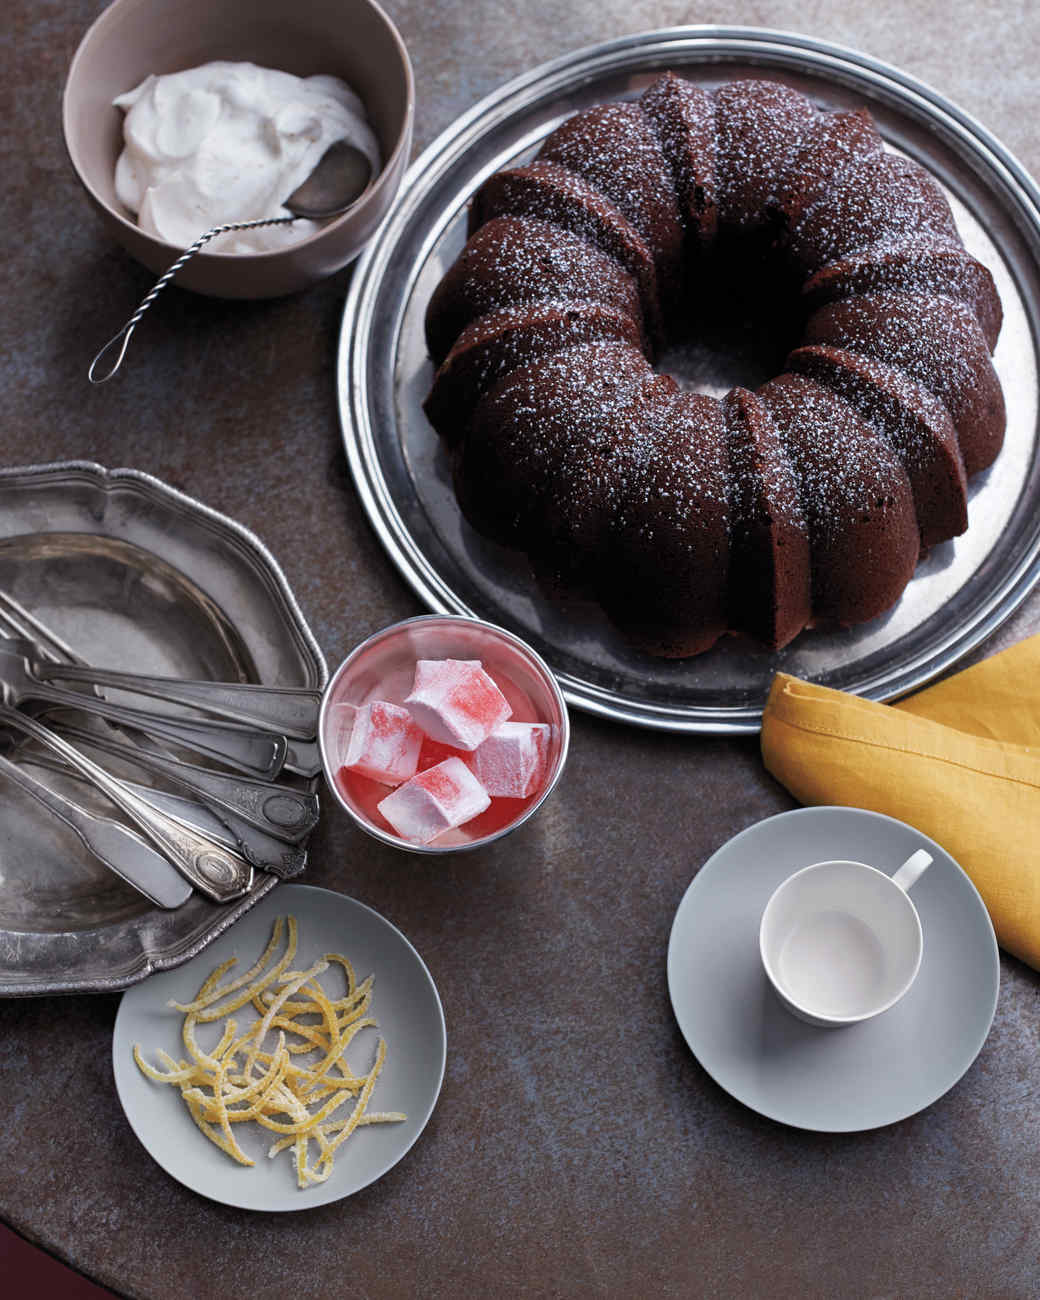 12 Of Our Most Beautiful Bundt Cakes They Re Easy To Make Too